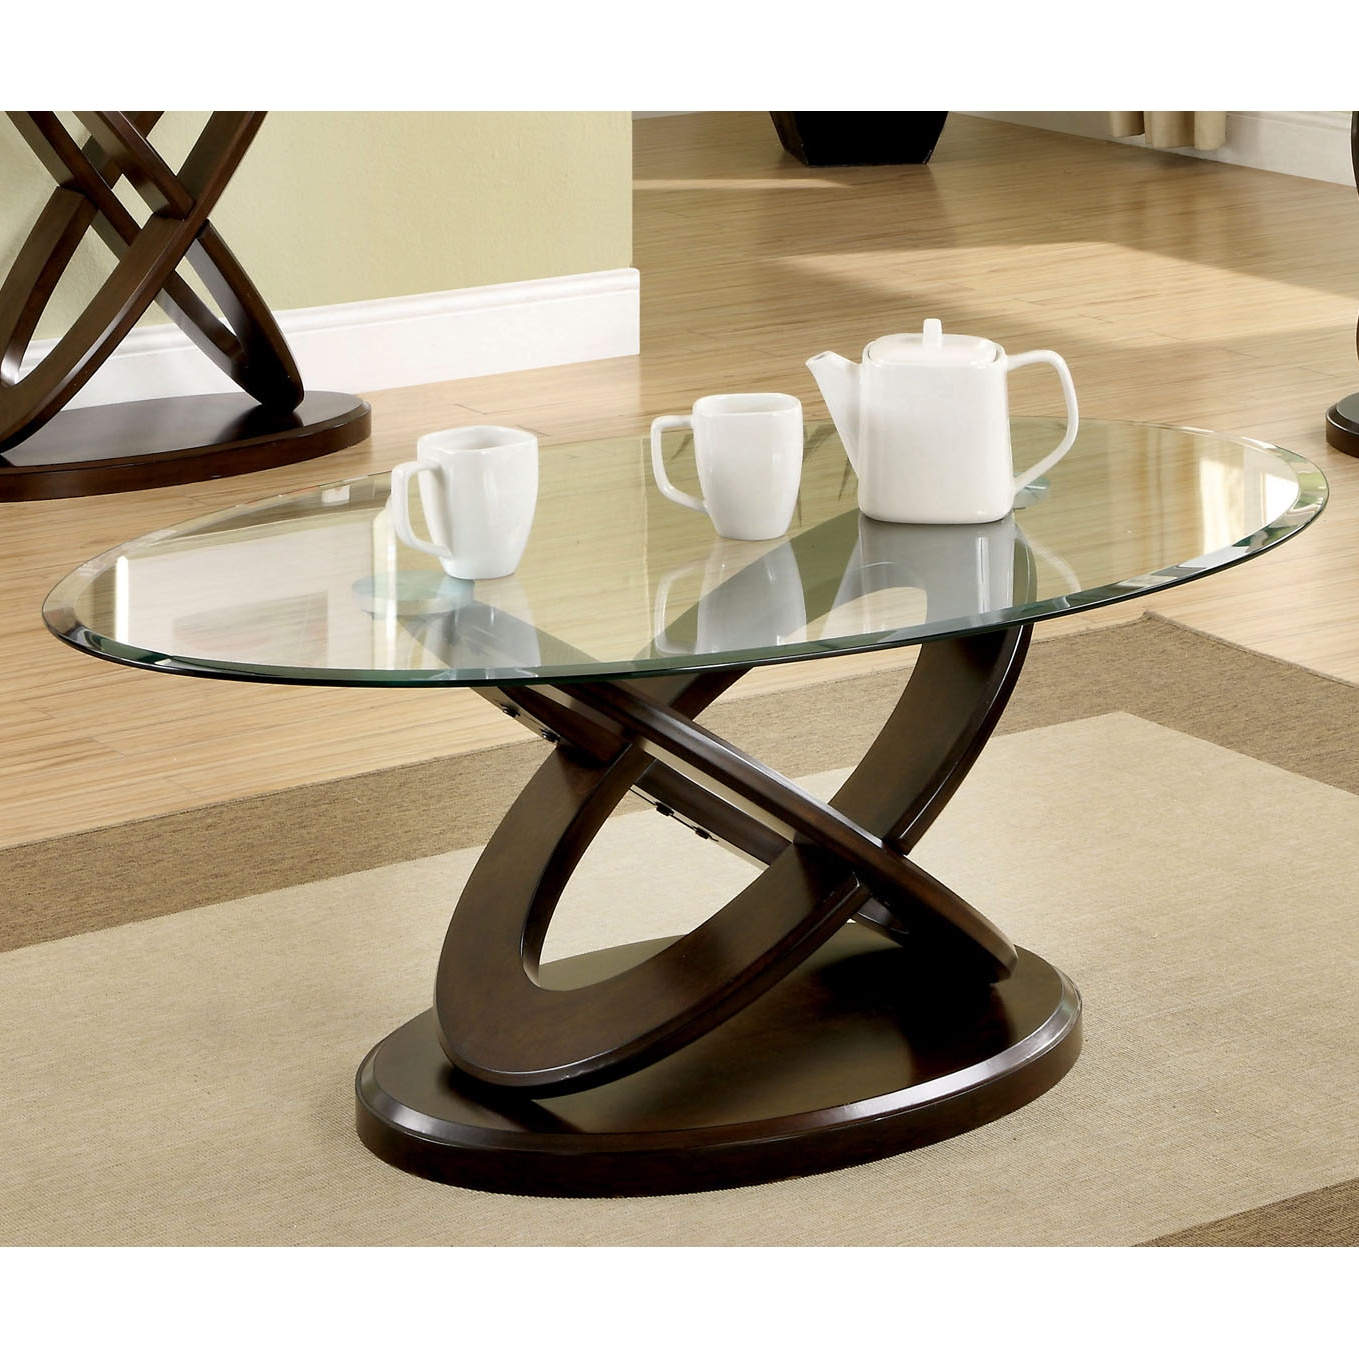 Best Furniture Online Shopping: Furniture Of America Evalline Oval Glass Top Coffee Table